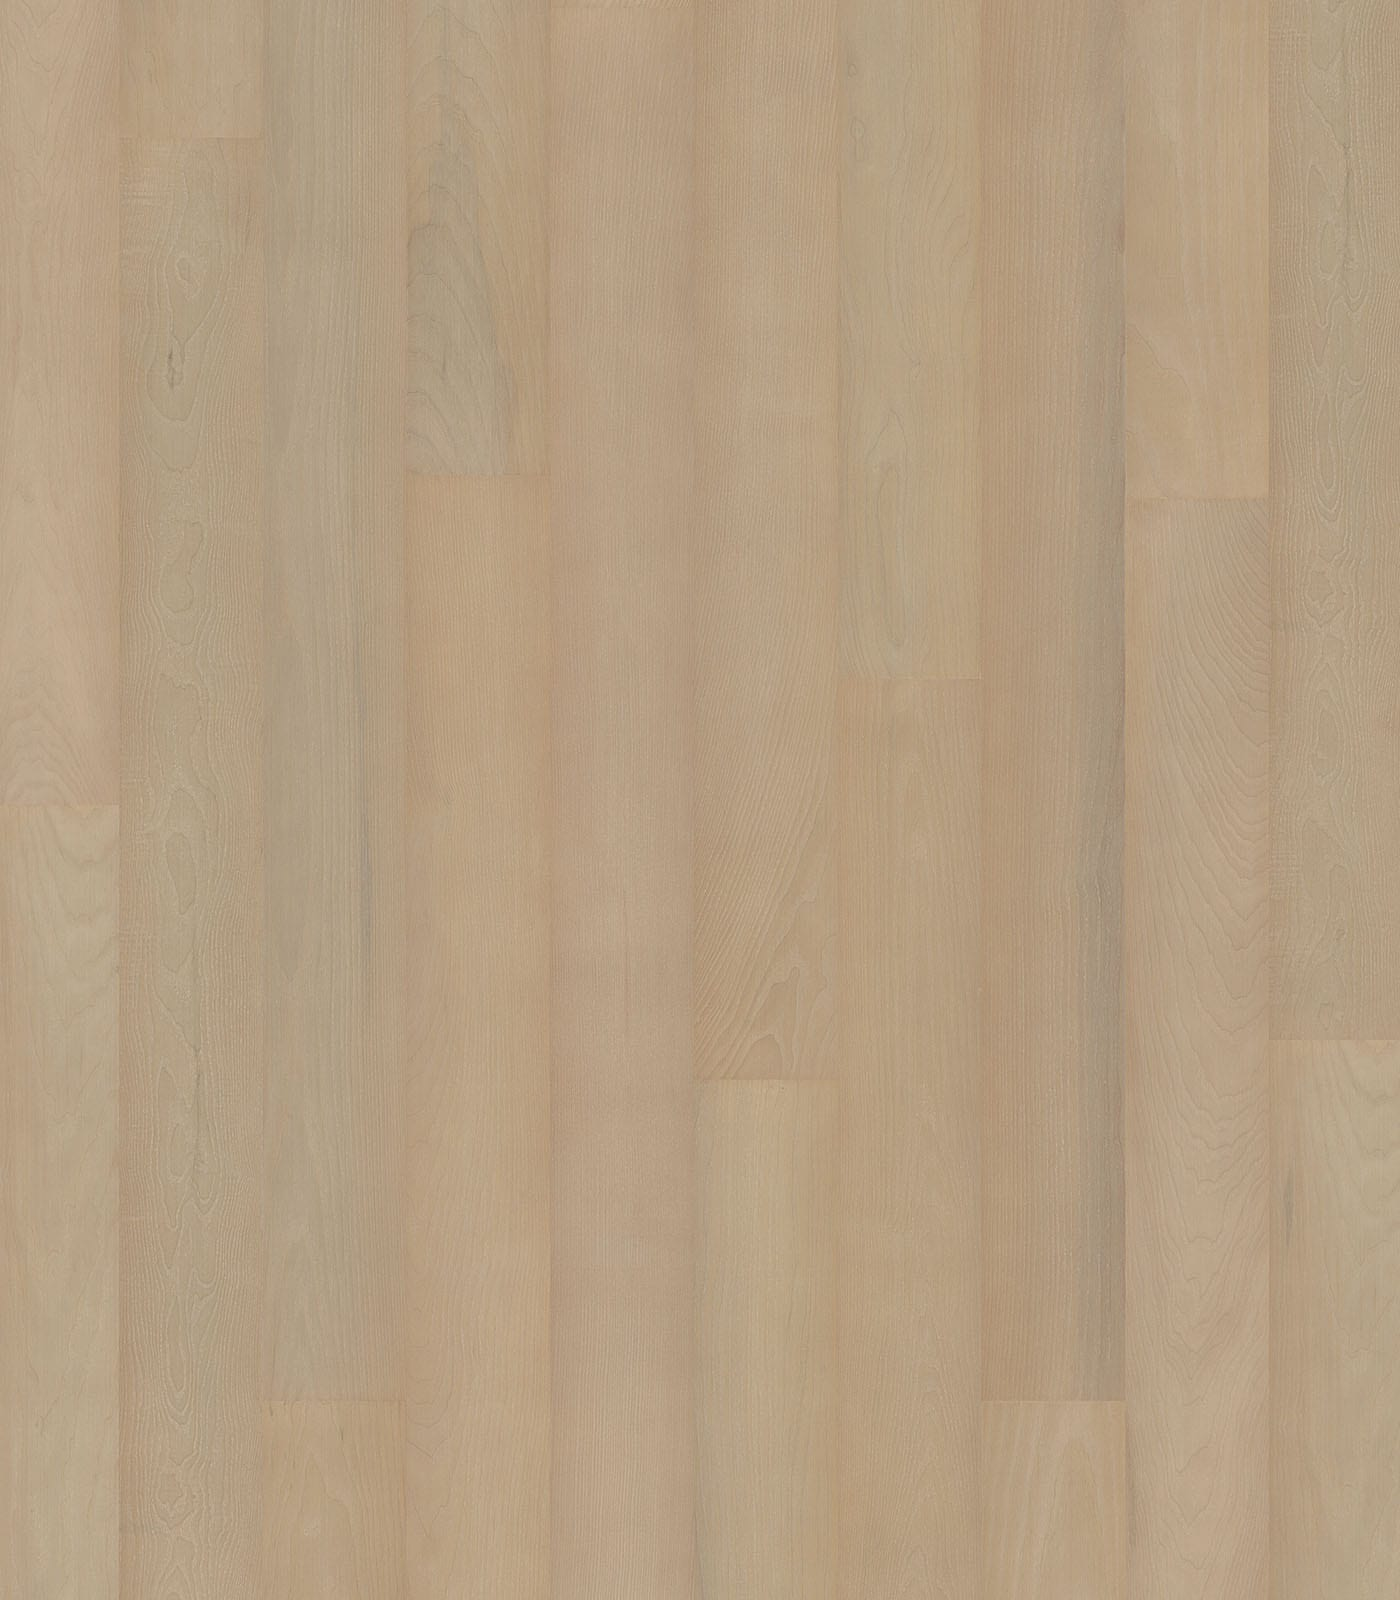 Berlin-European Ash floors-After Oak Collection - flat